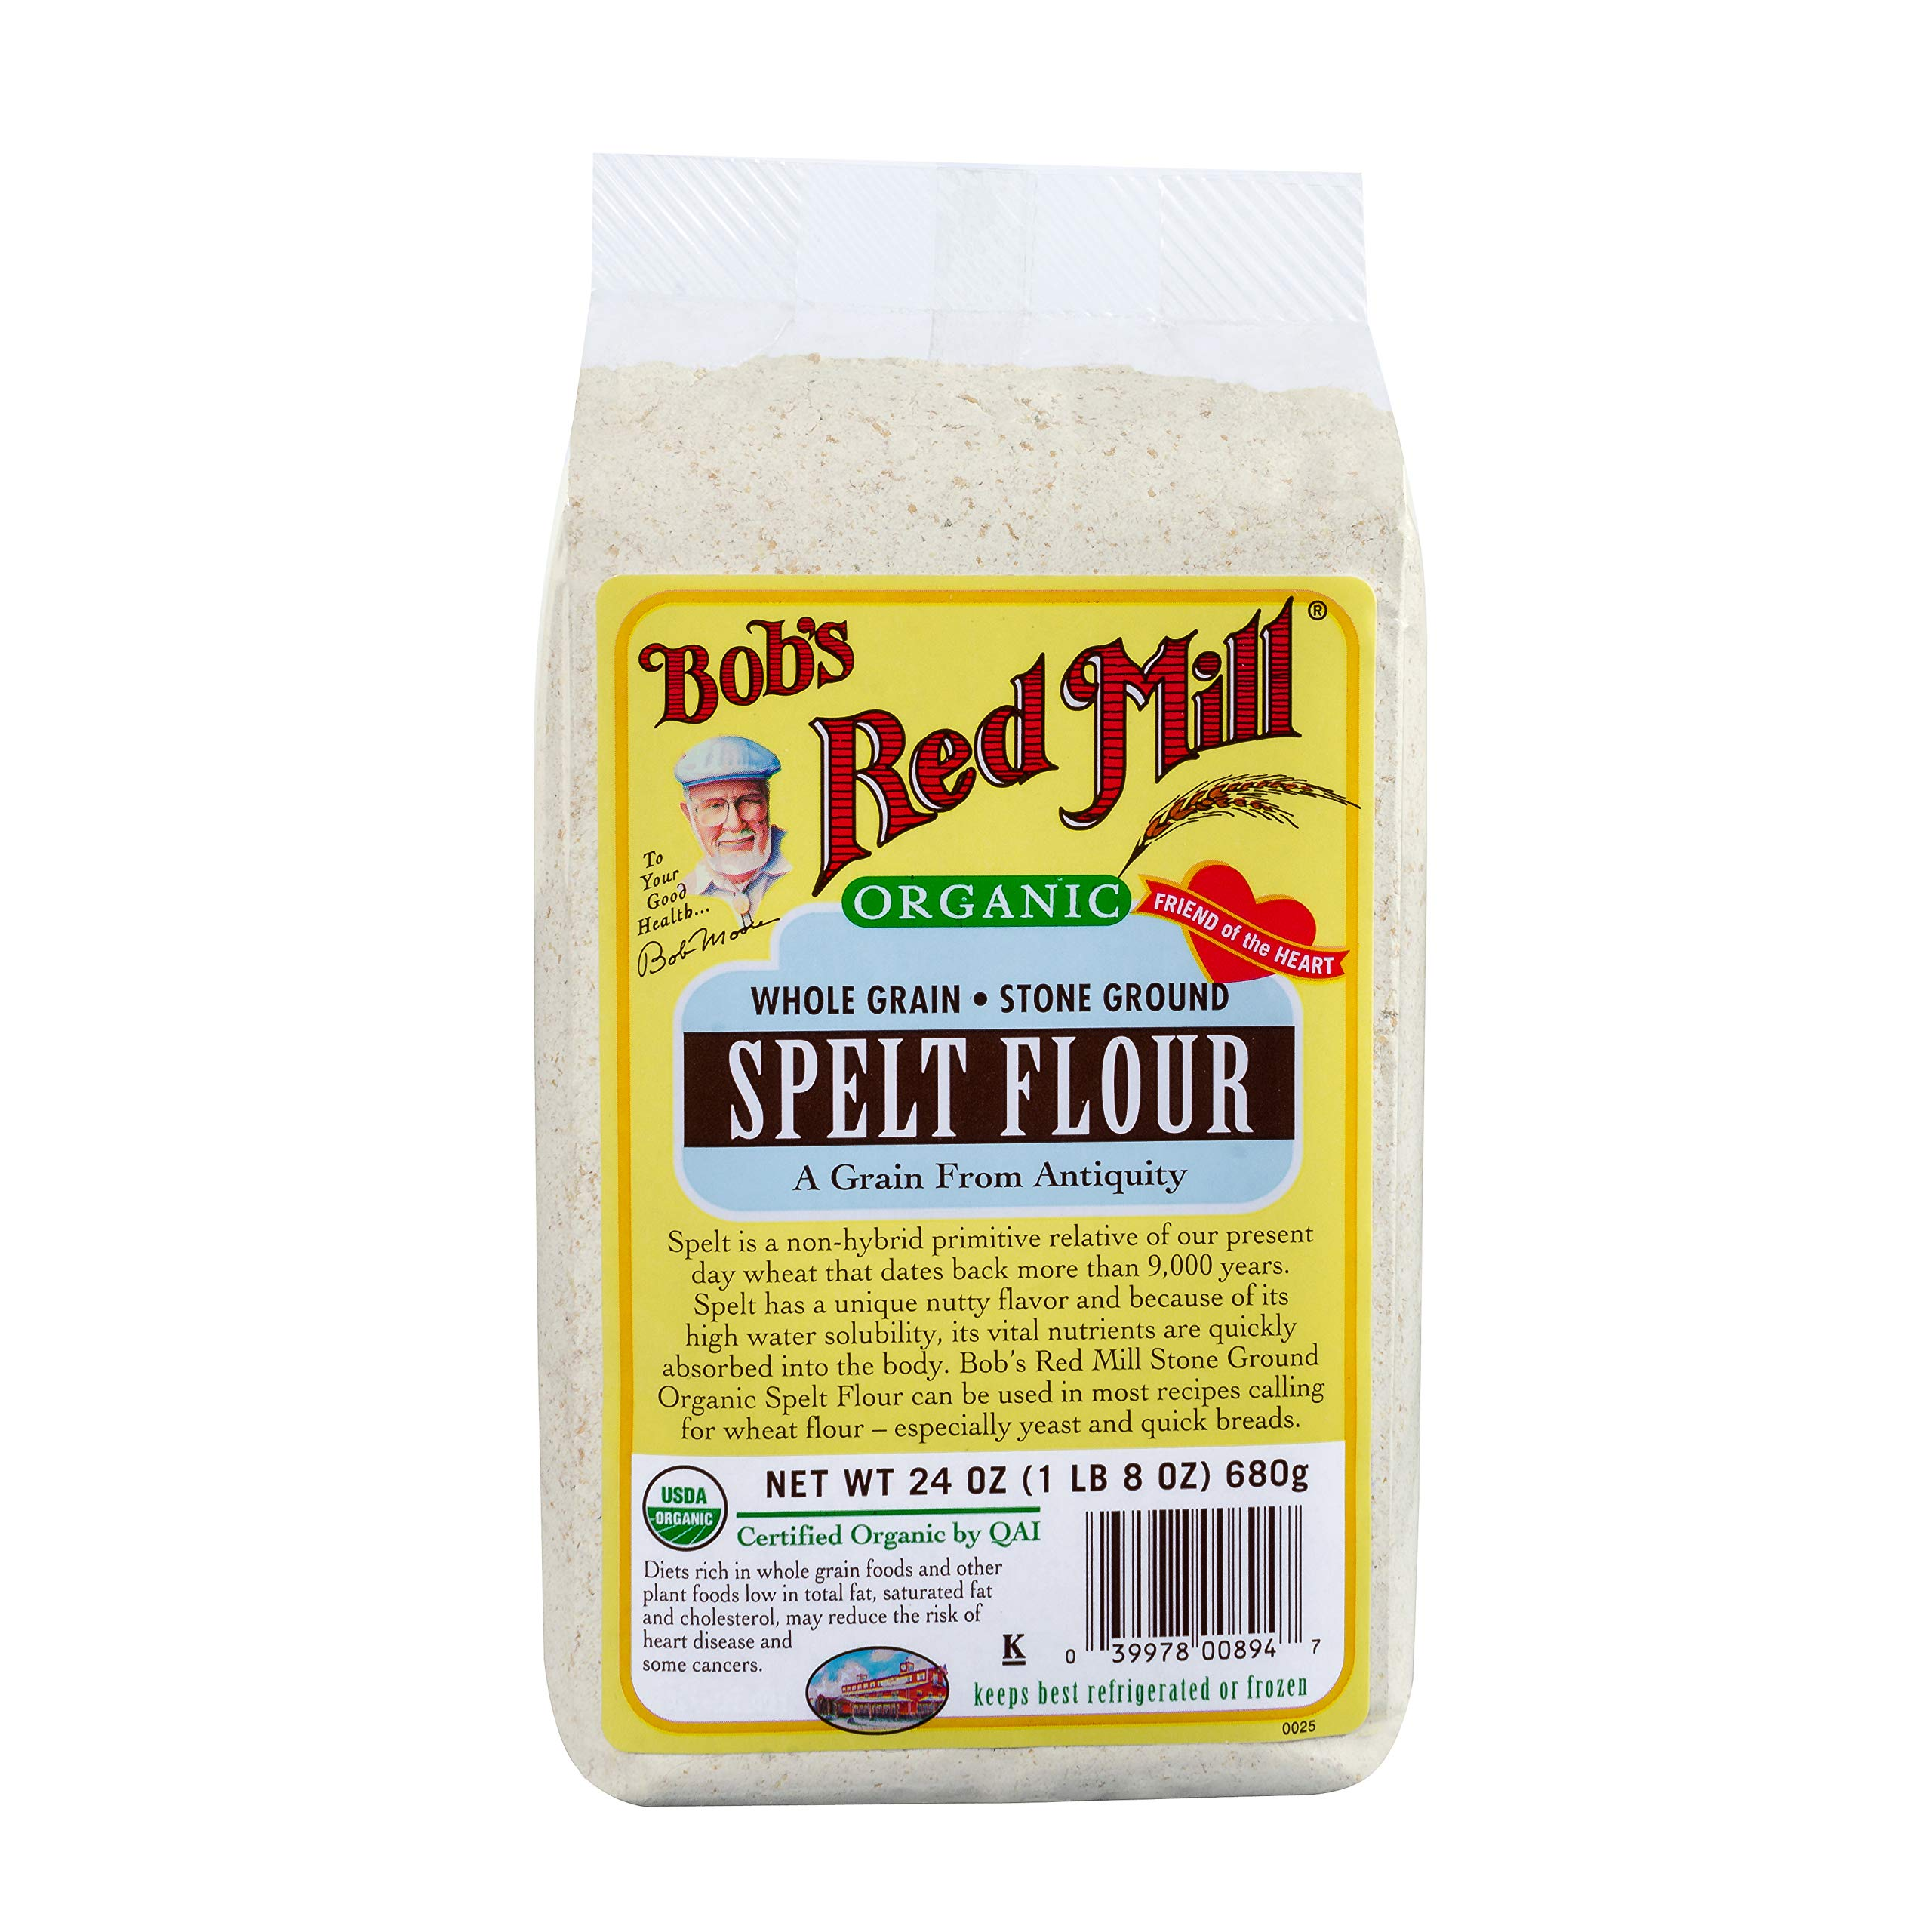 Bob's Red Mill Organic Spelt Flour, 24-ounce (Pack of 4) by Bob's Red Mill (Image #1)